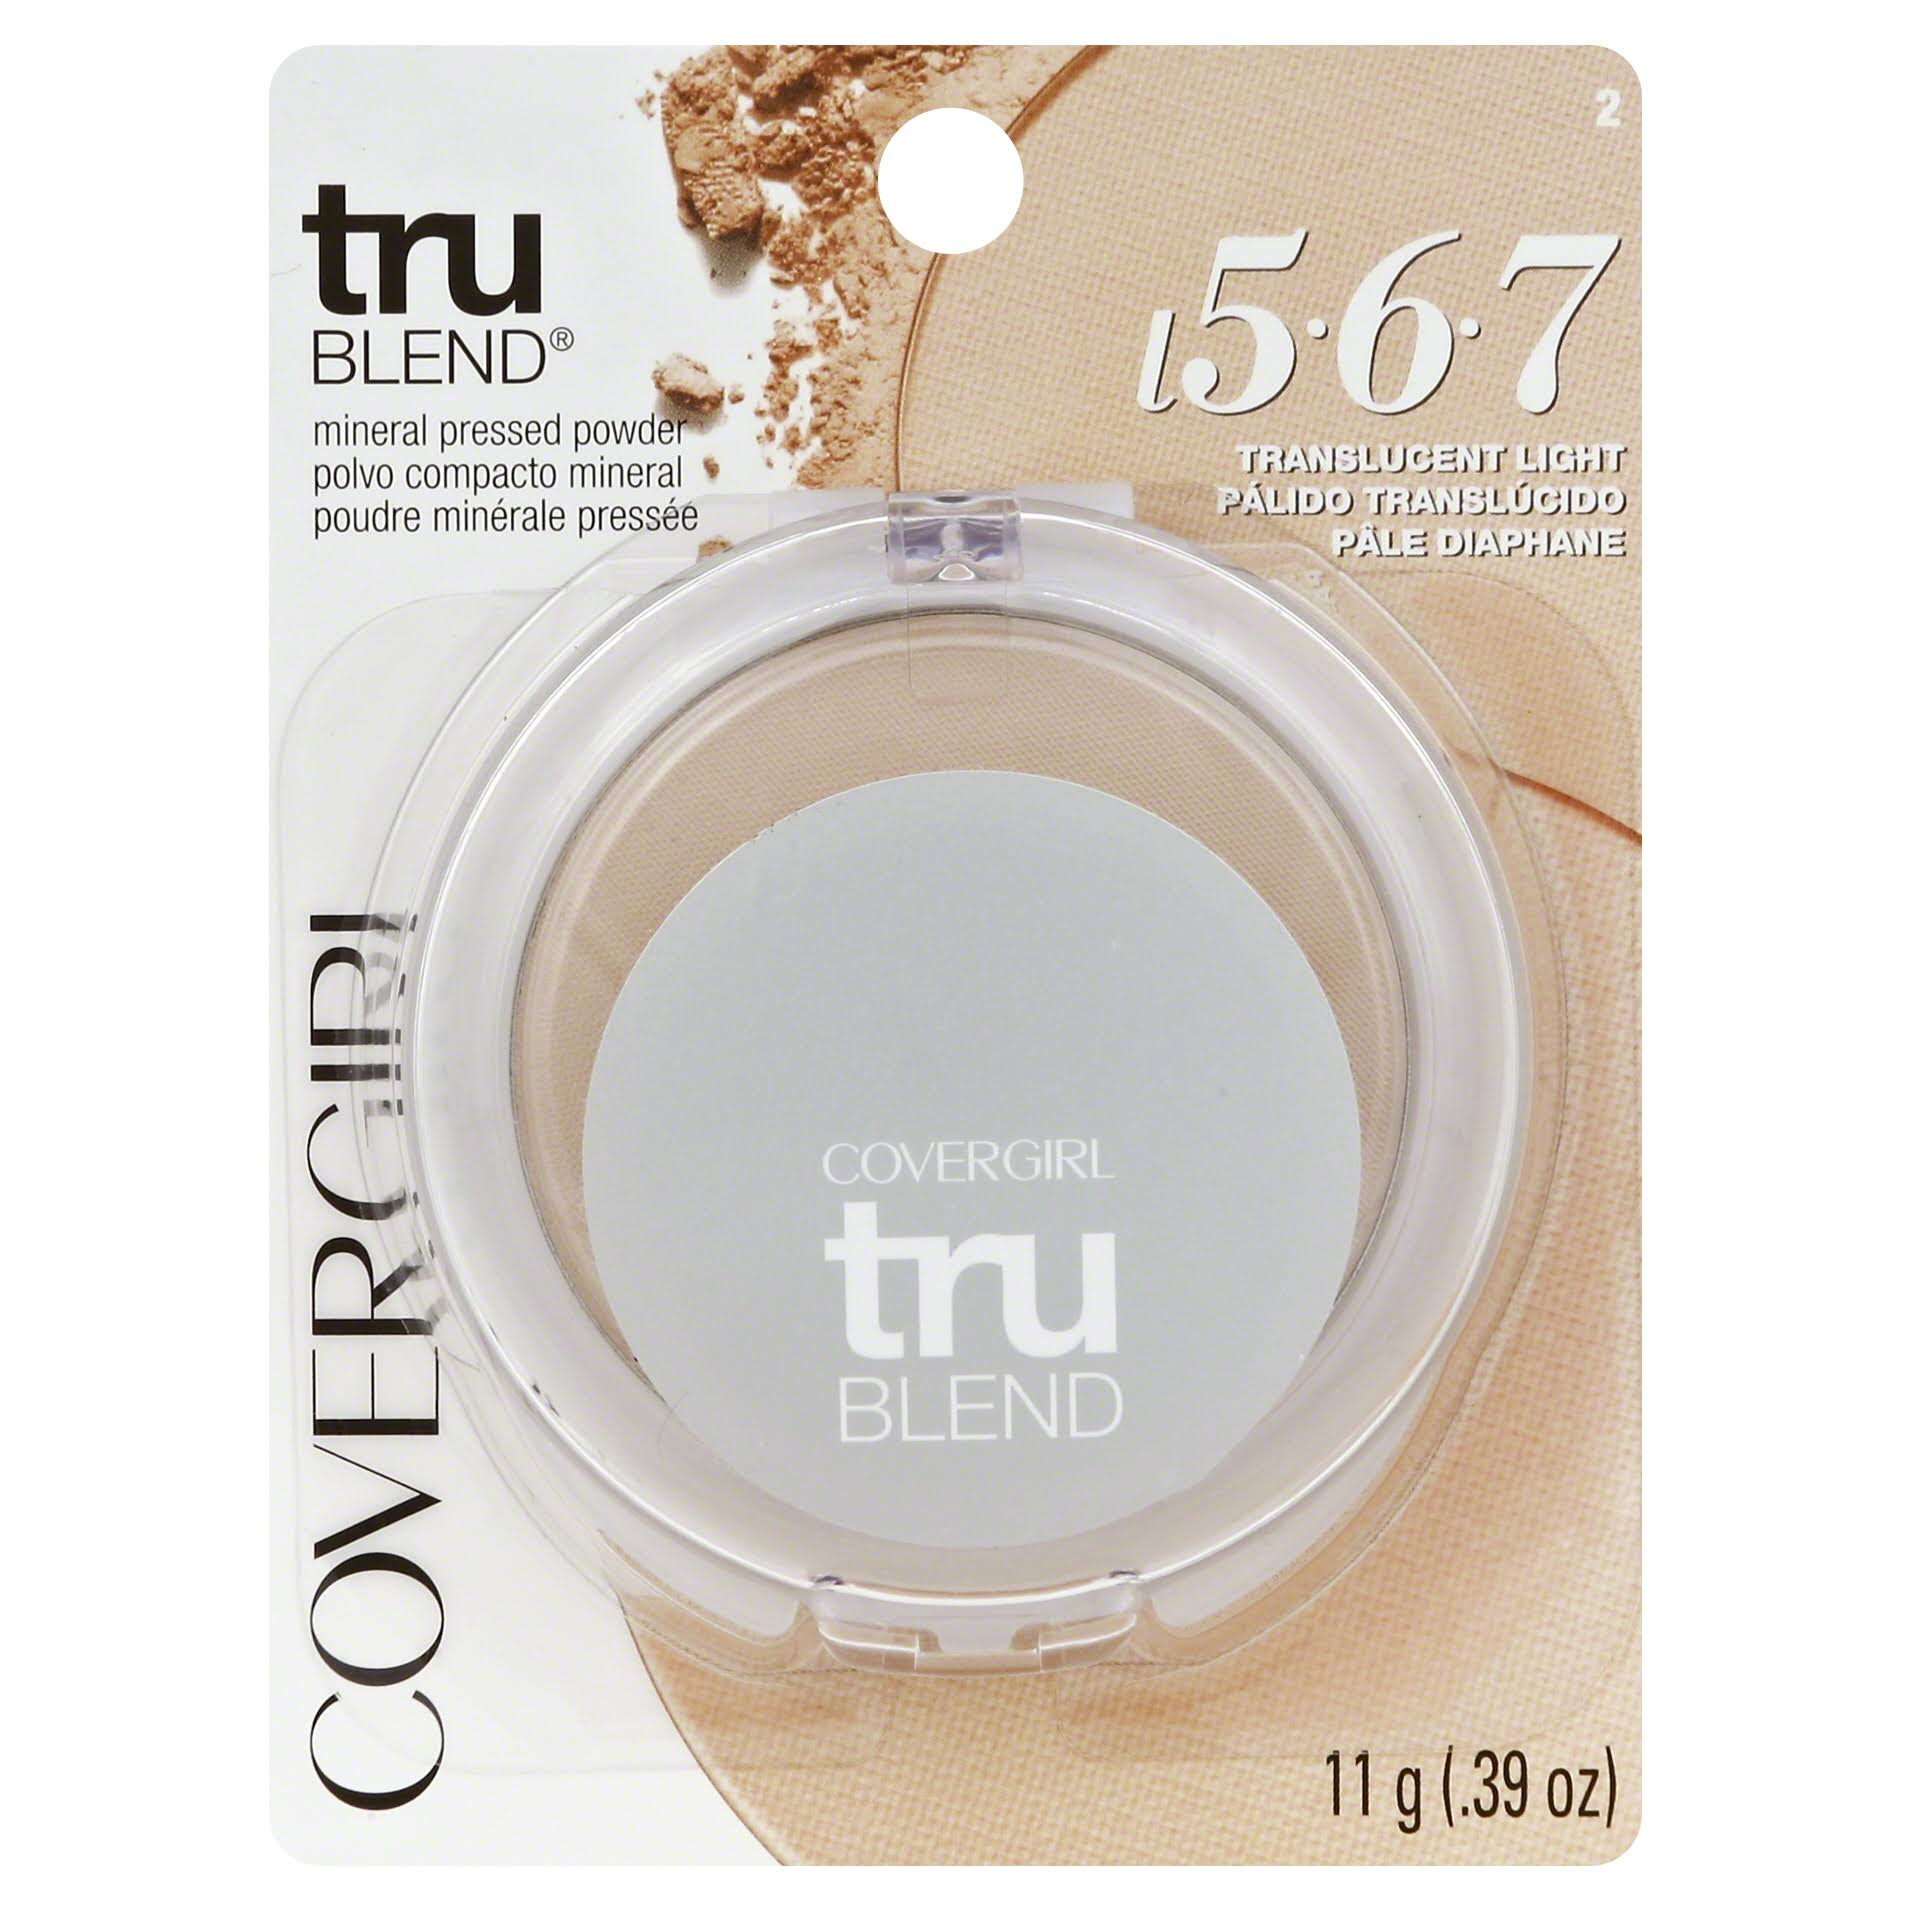 Covergirl Trublend Pressed Powder - Translucent Light 2